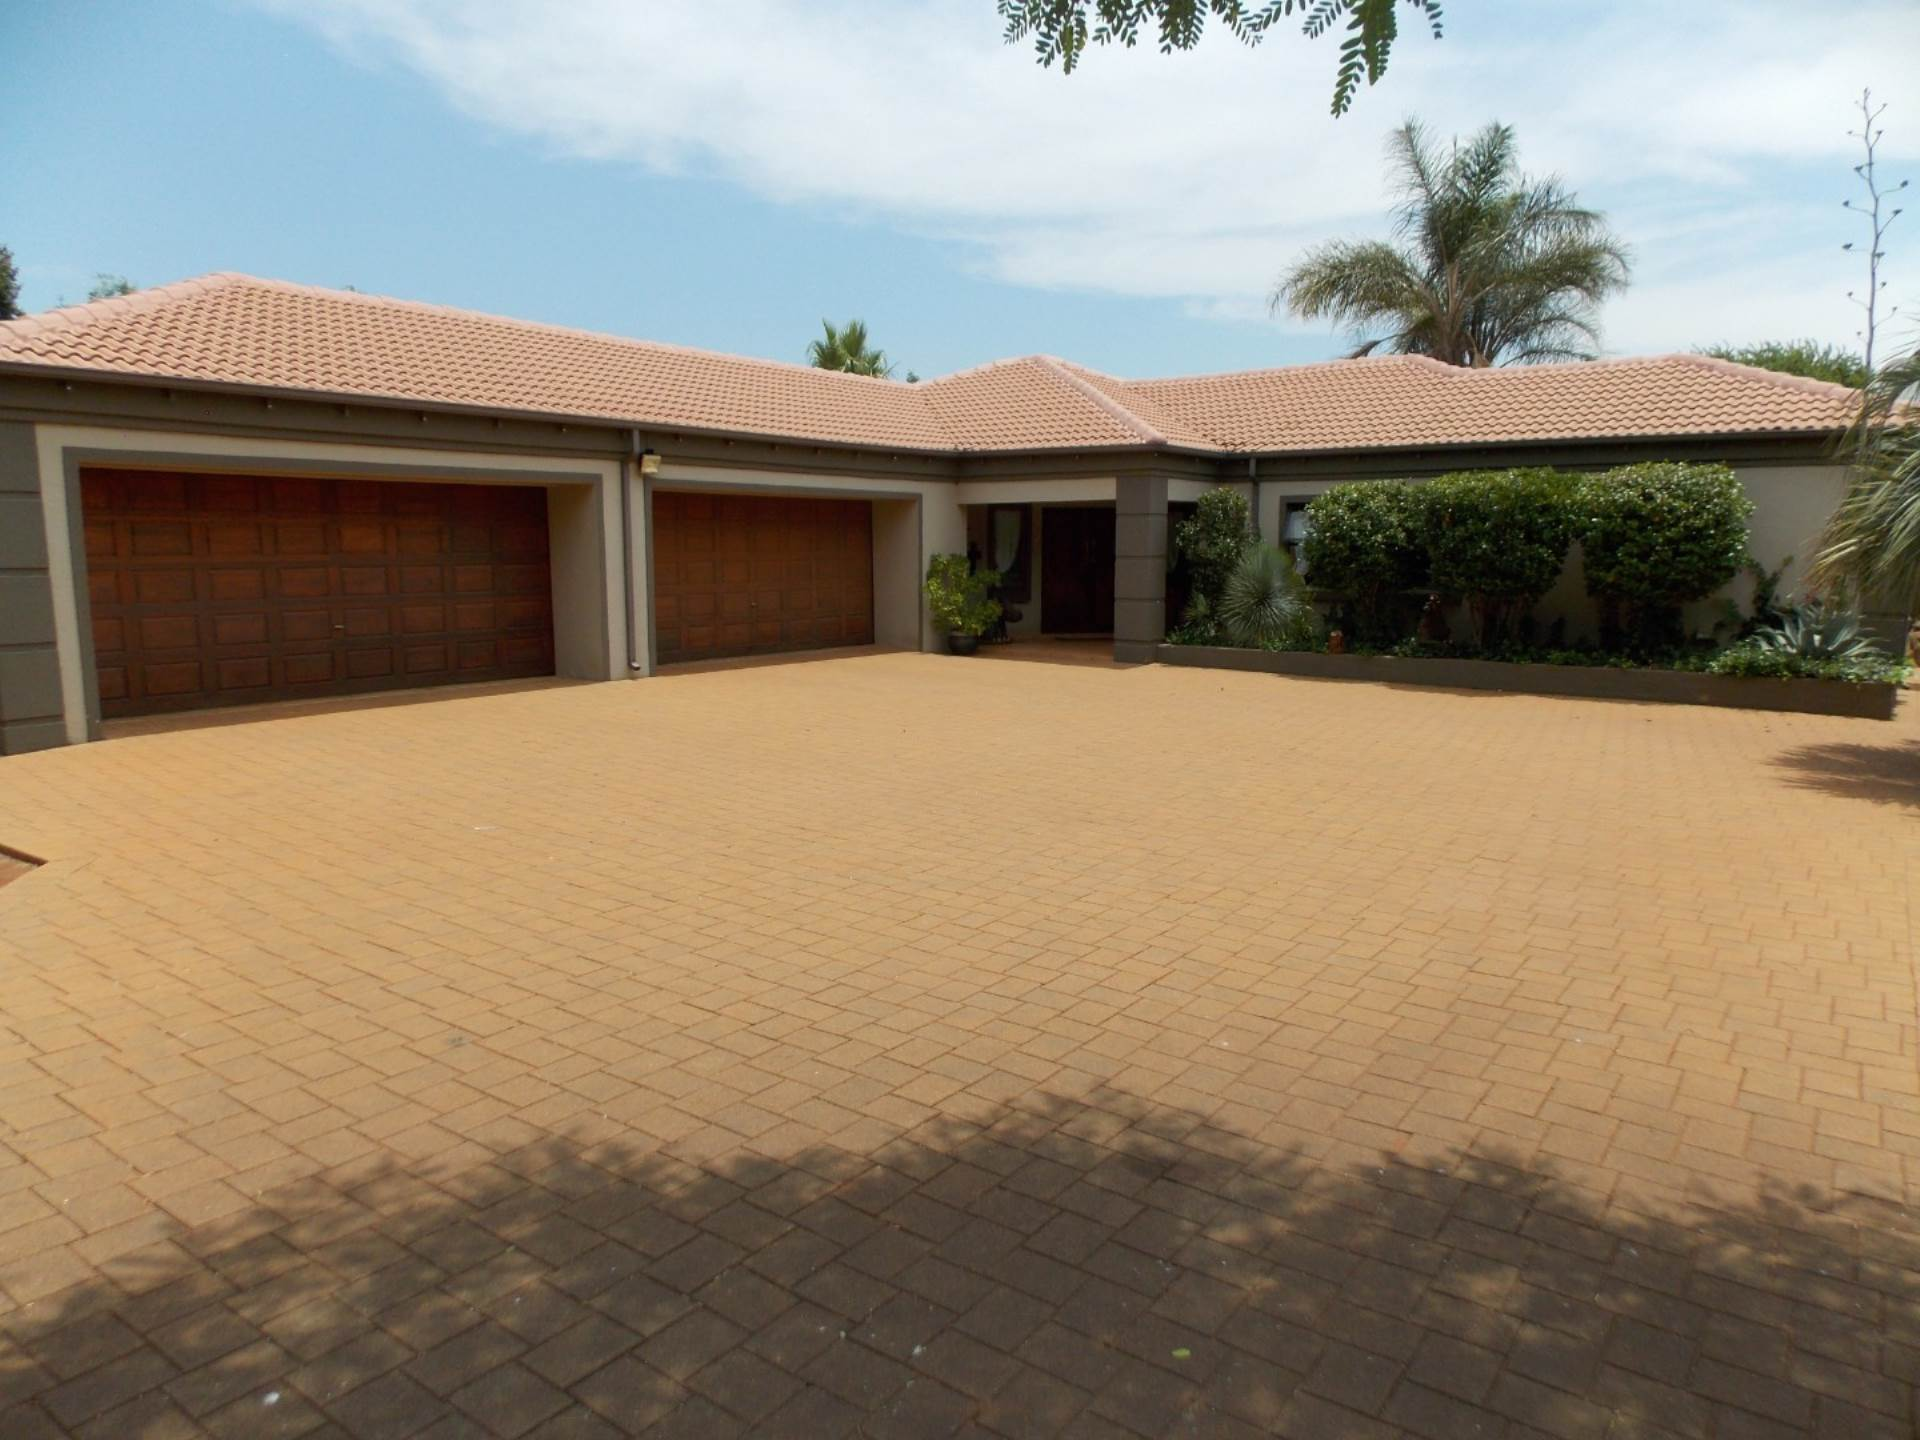 Pretoria, Rietvlei View Country Estate Property  | Houses For Sale Rietvlei View Country Estate, RIETVLEI VIEW COUNTRY ESTATE, House 4 bedrooms property for sale Price:4,995,000